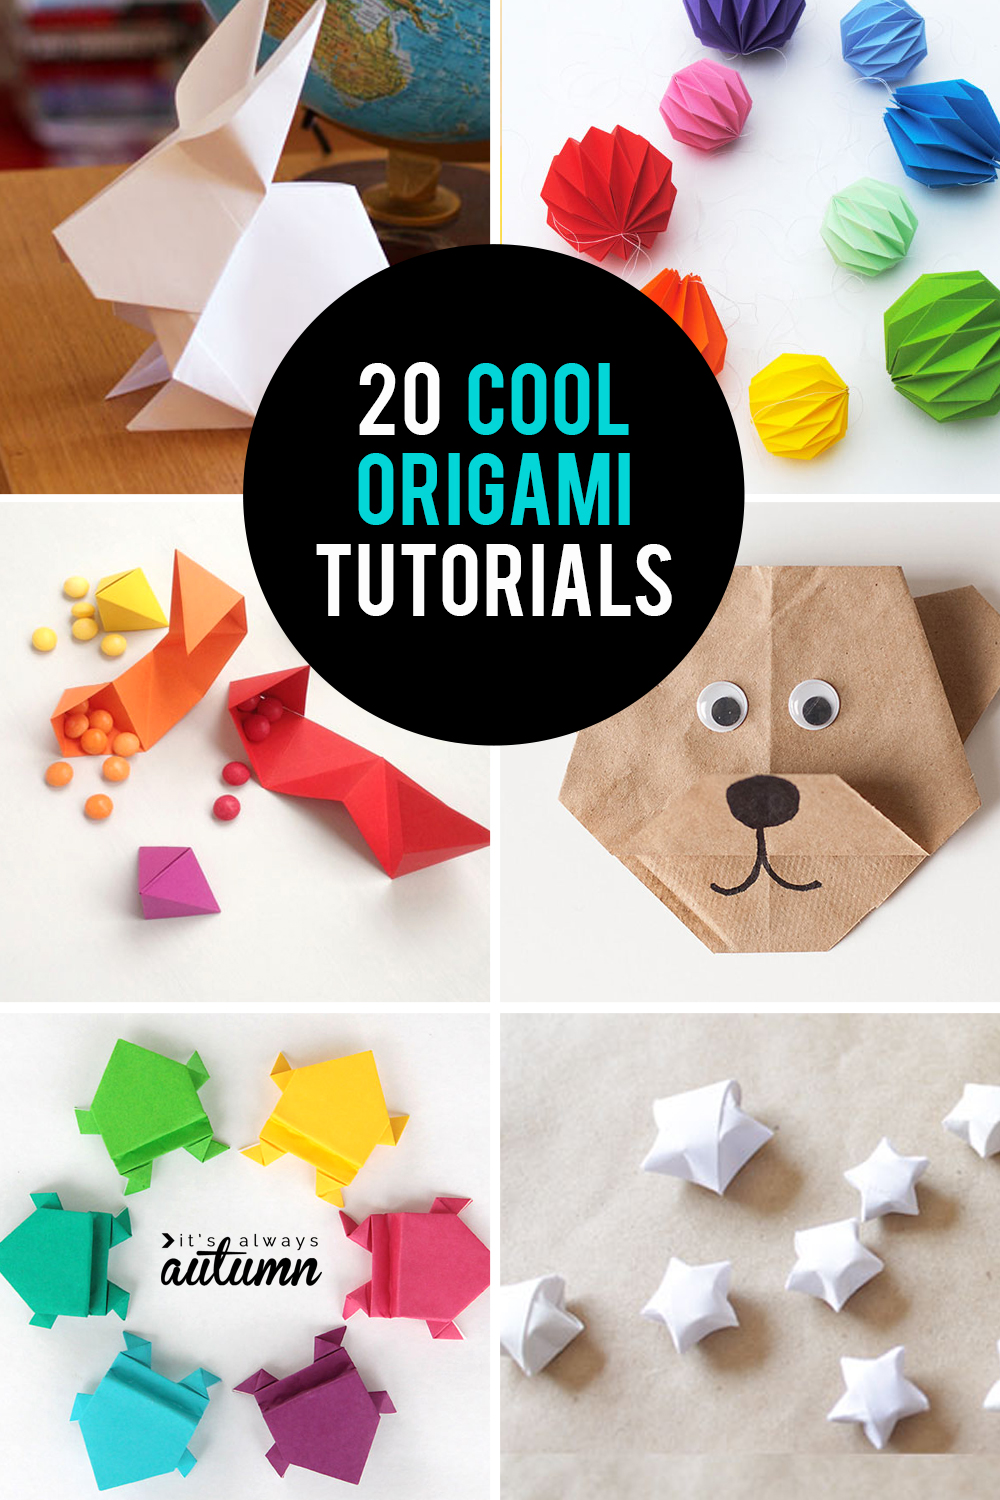 20 fun, easy, cool origami tutorials for kids and adults.